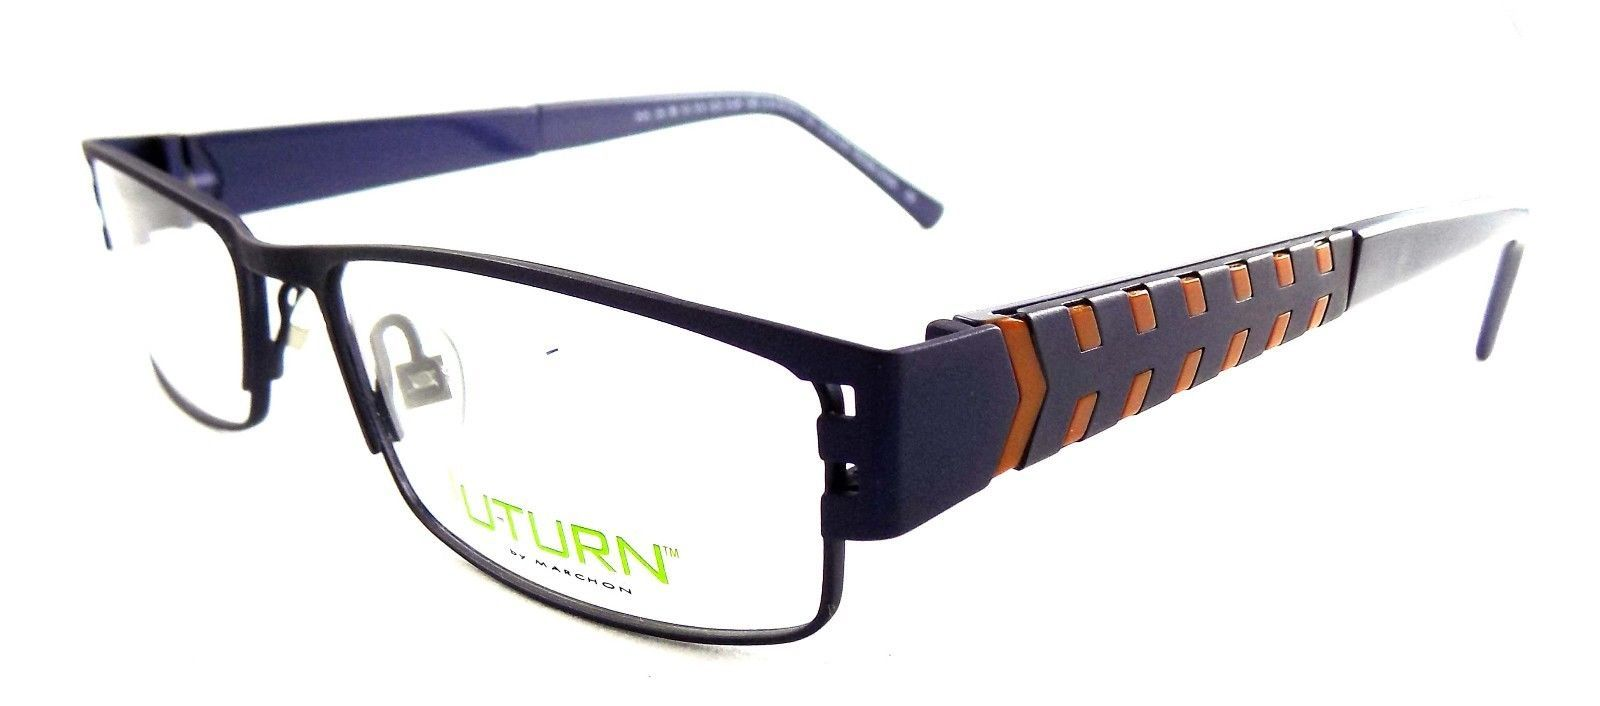 Marchon Eyeglass Frame: 1 customer review and 20 listings